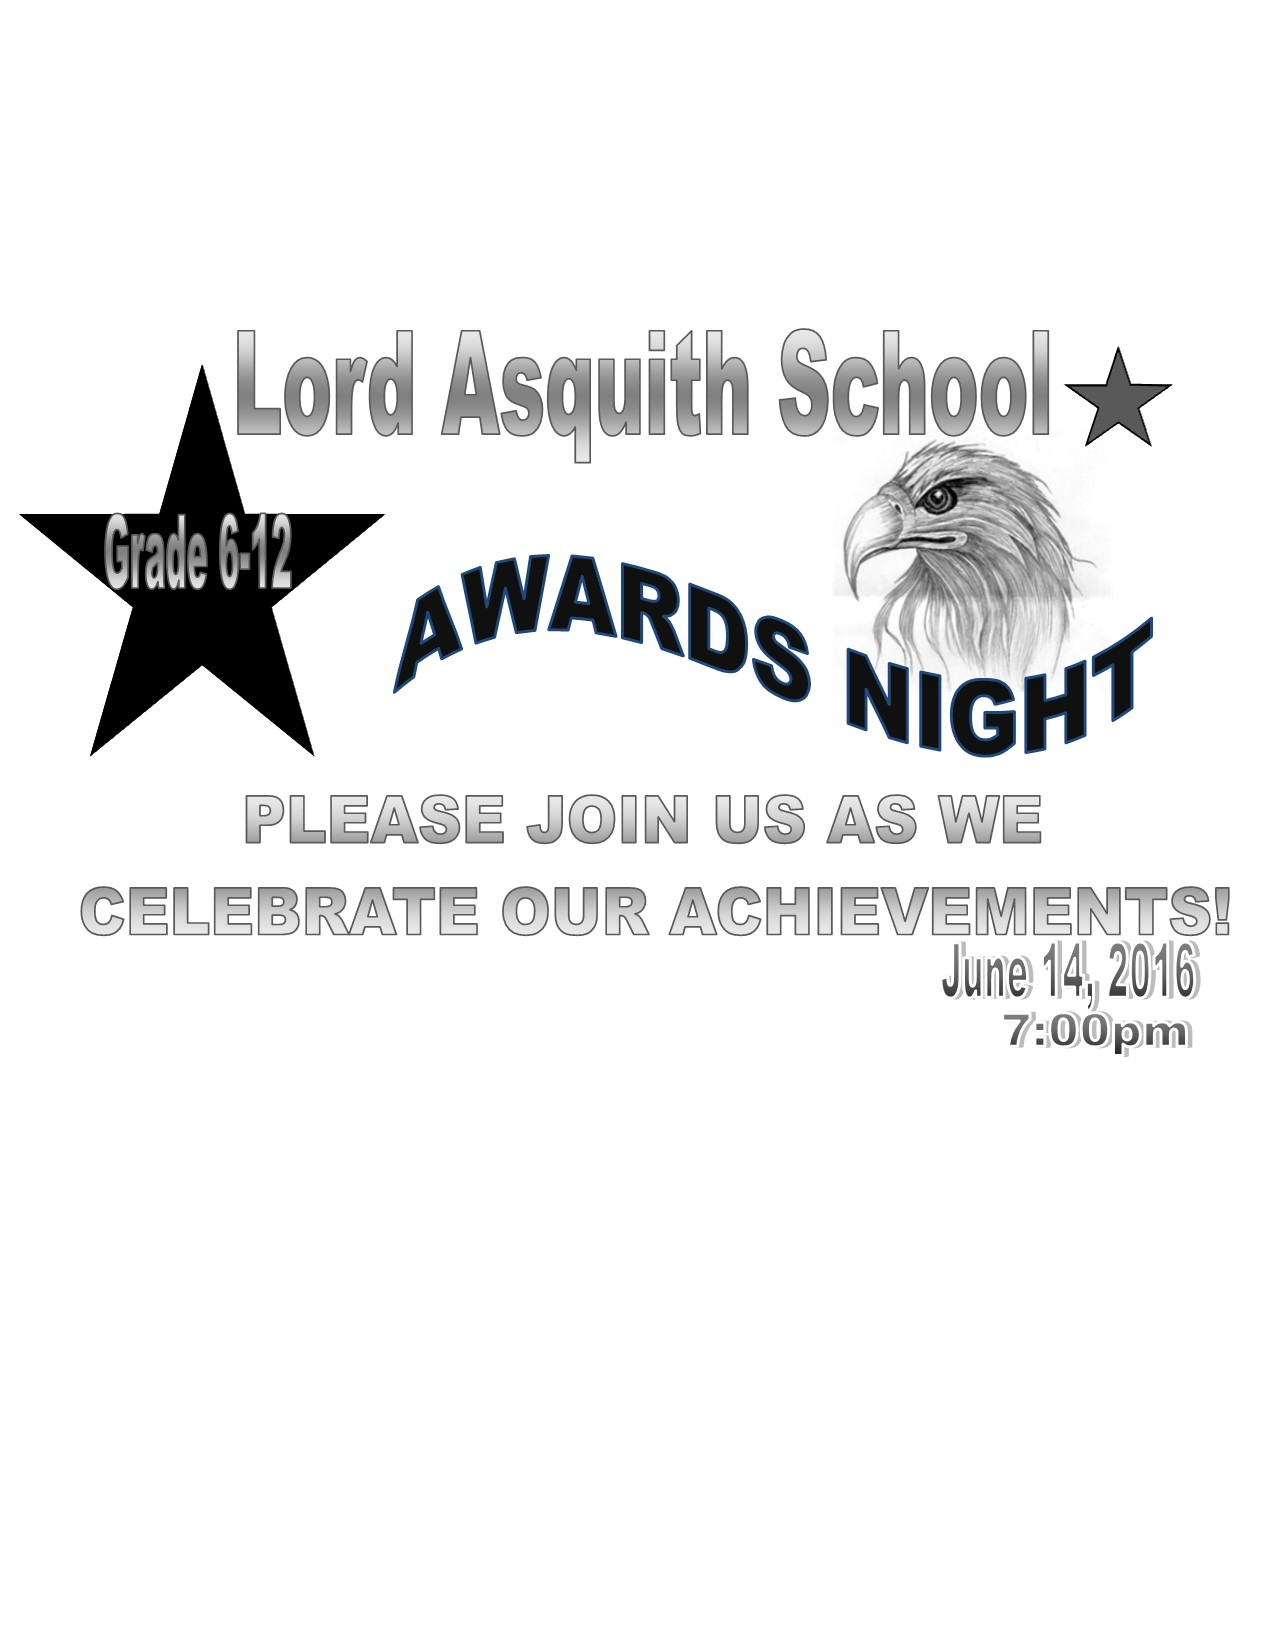 Award Night Invitation